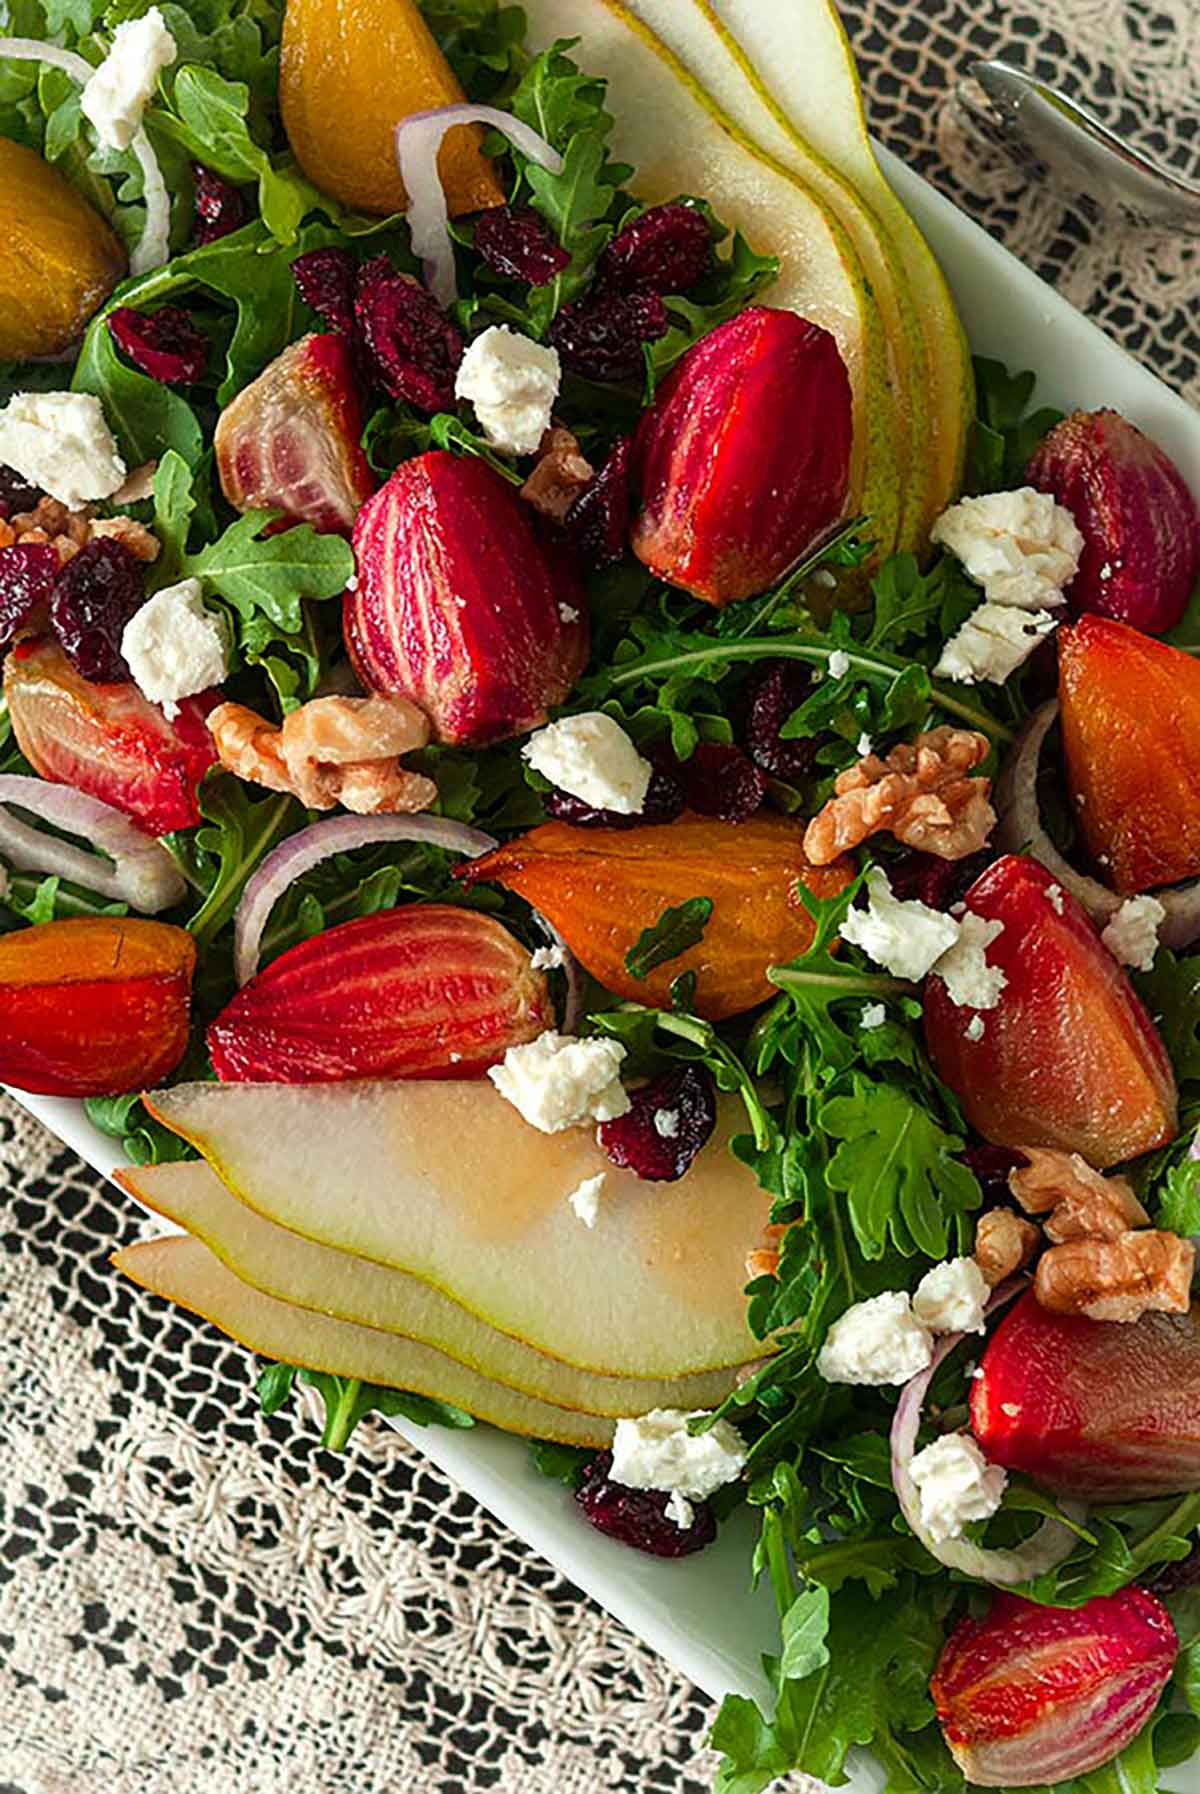 A salad with colorful vegetables, pears, berries and nuts on a lace table cloth.